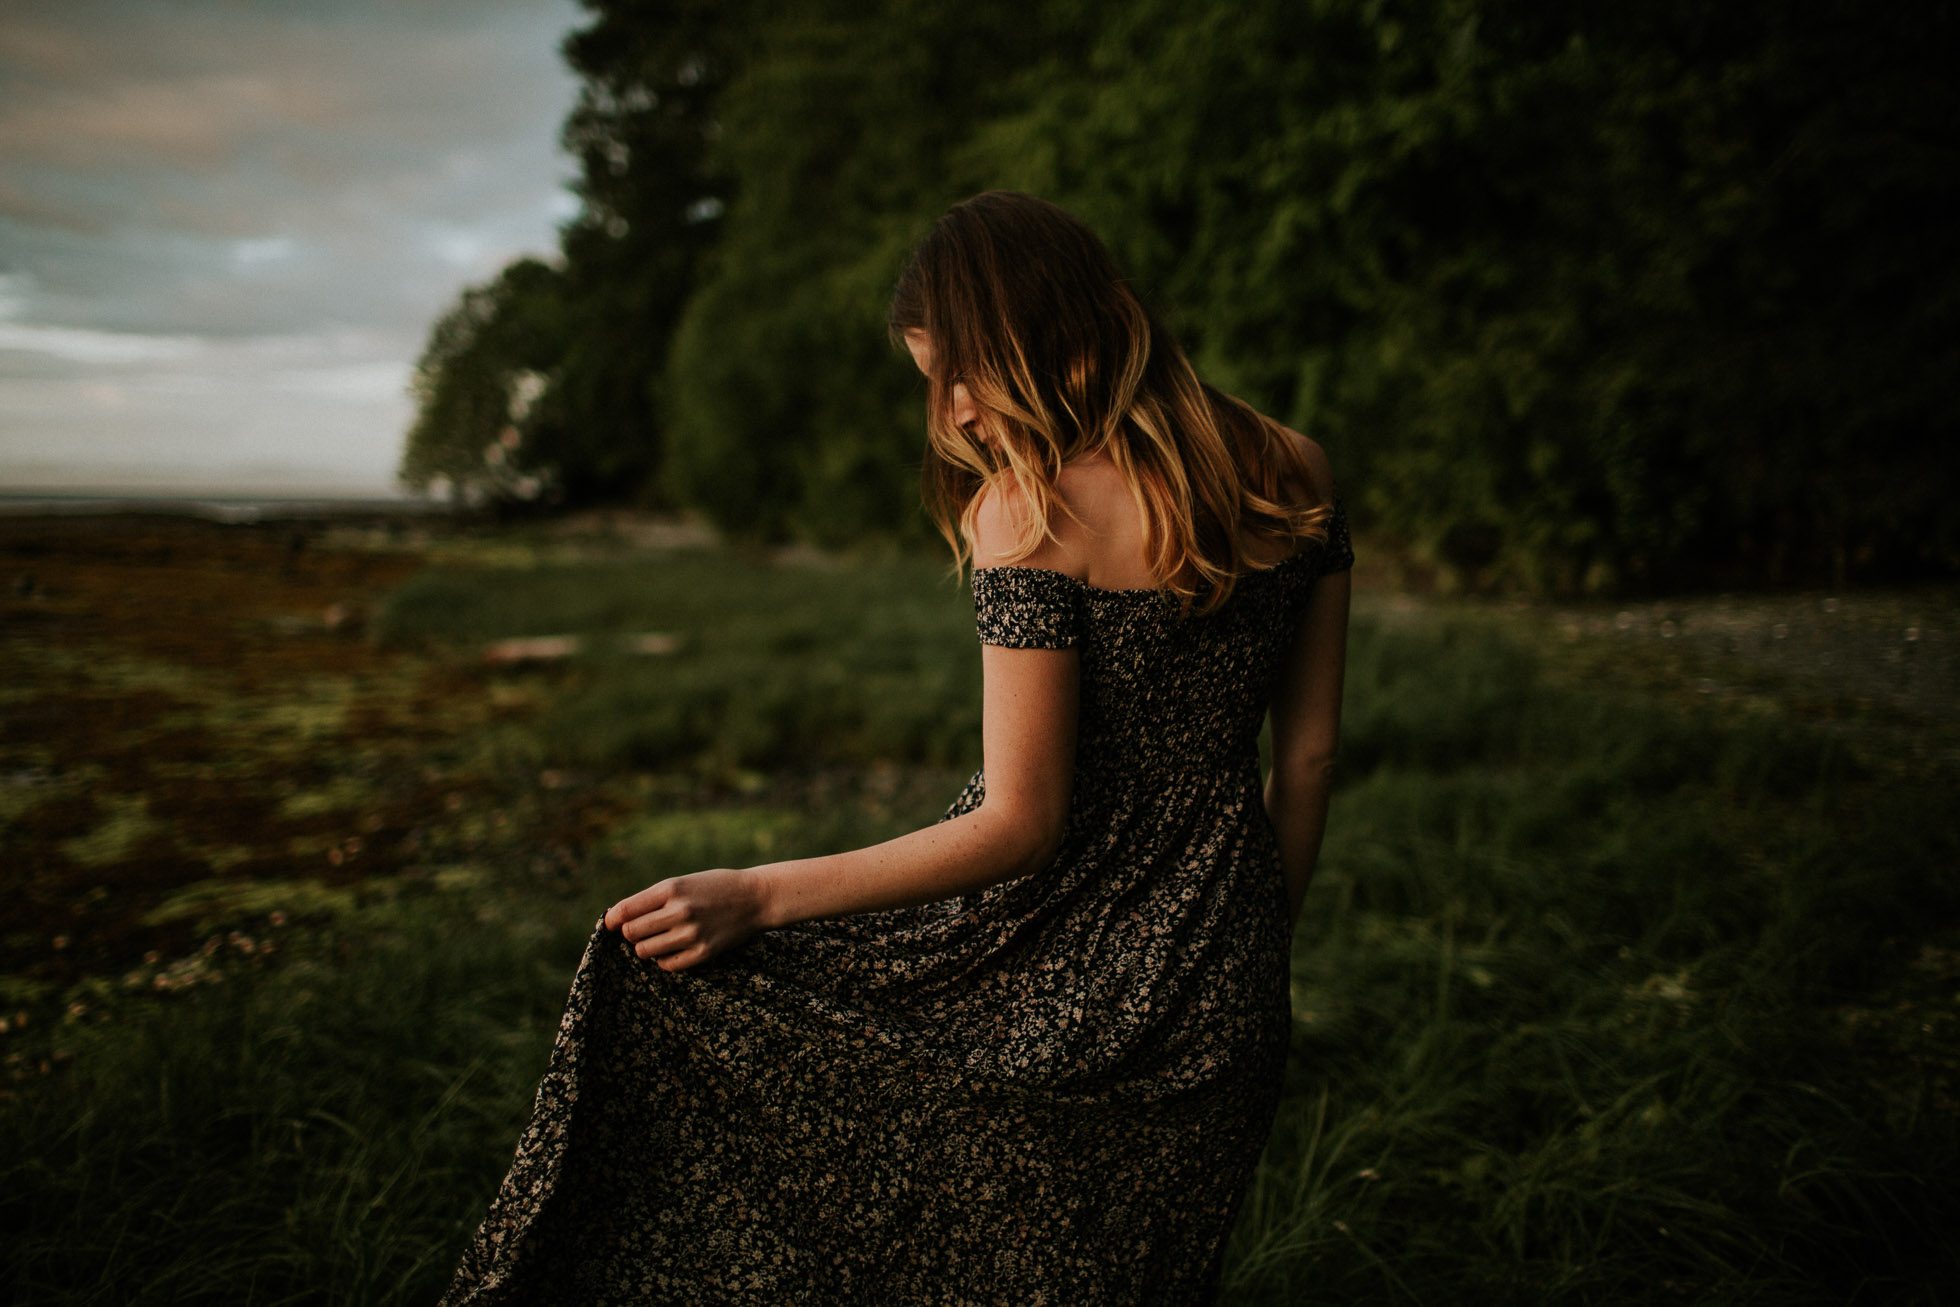 photo of woman in a field by Cassandra Casley